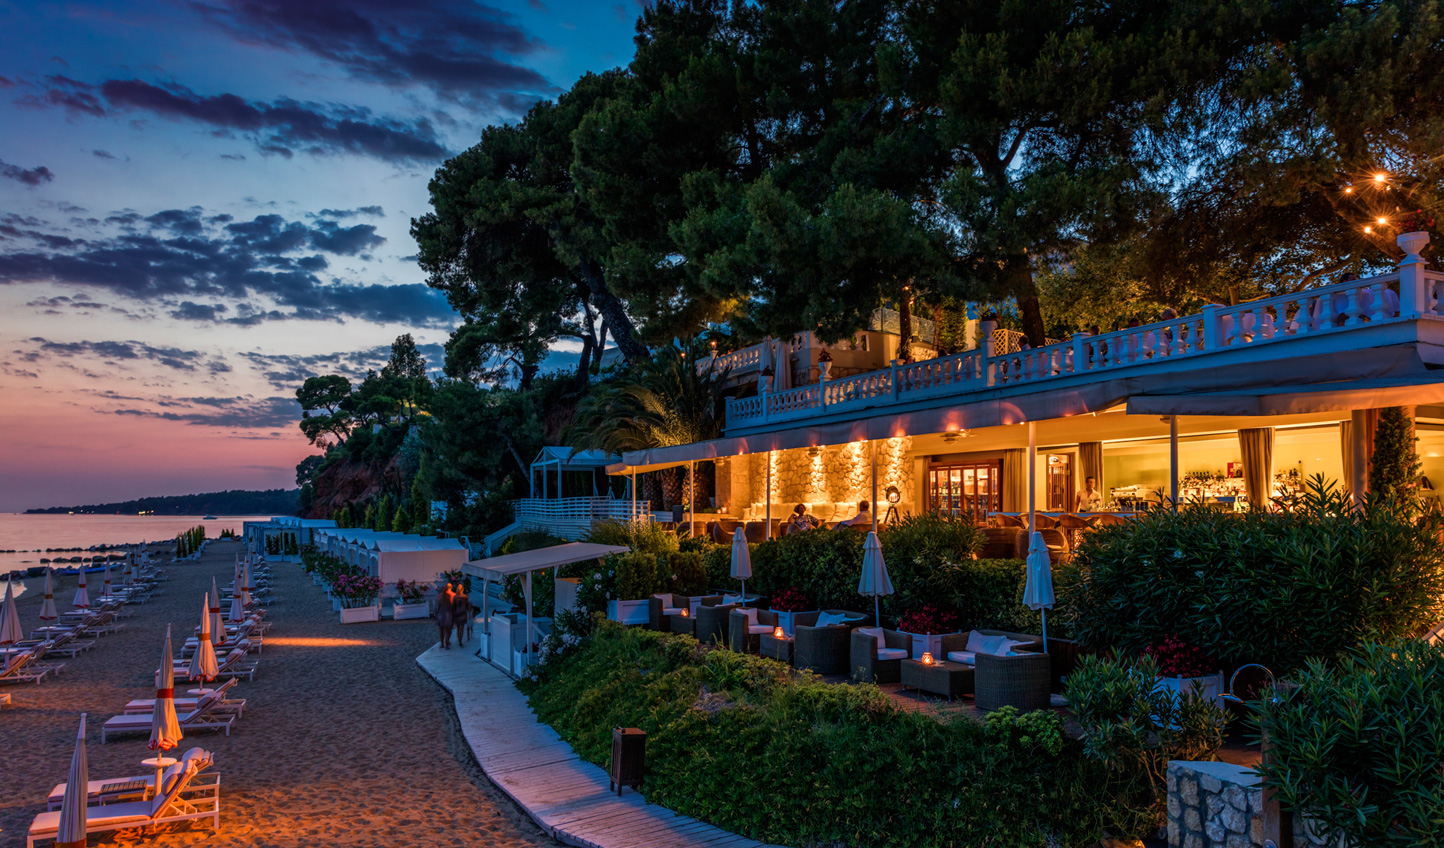 The perfect spot for sundowners